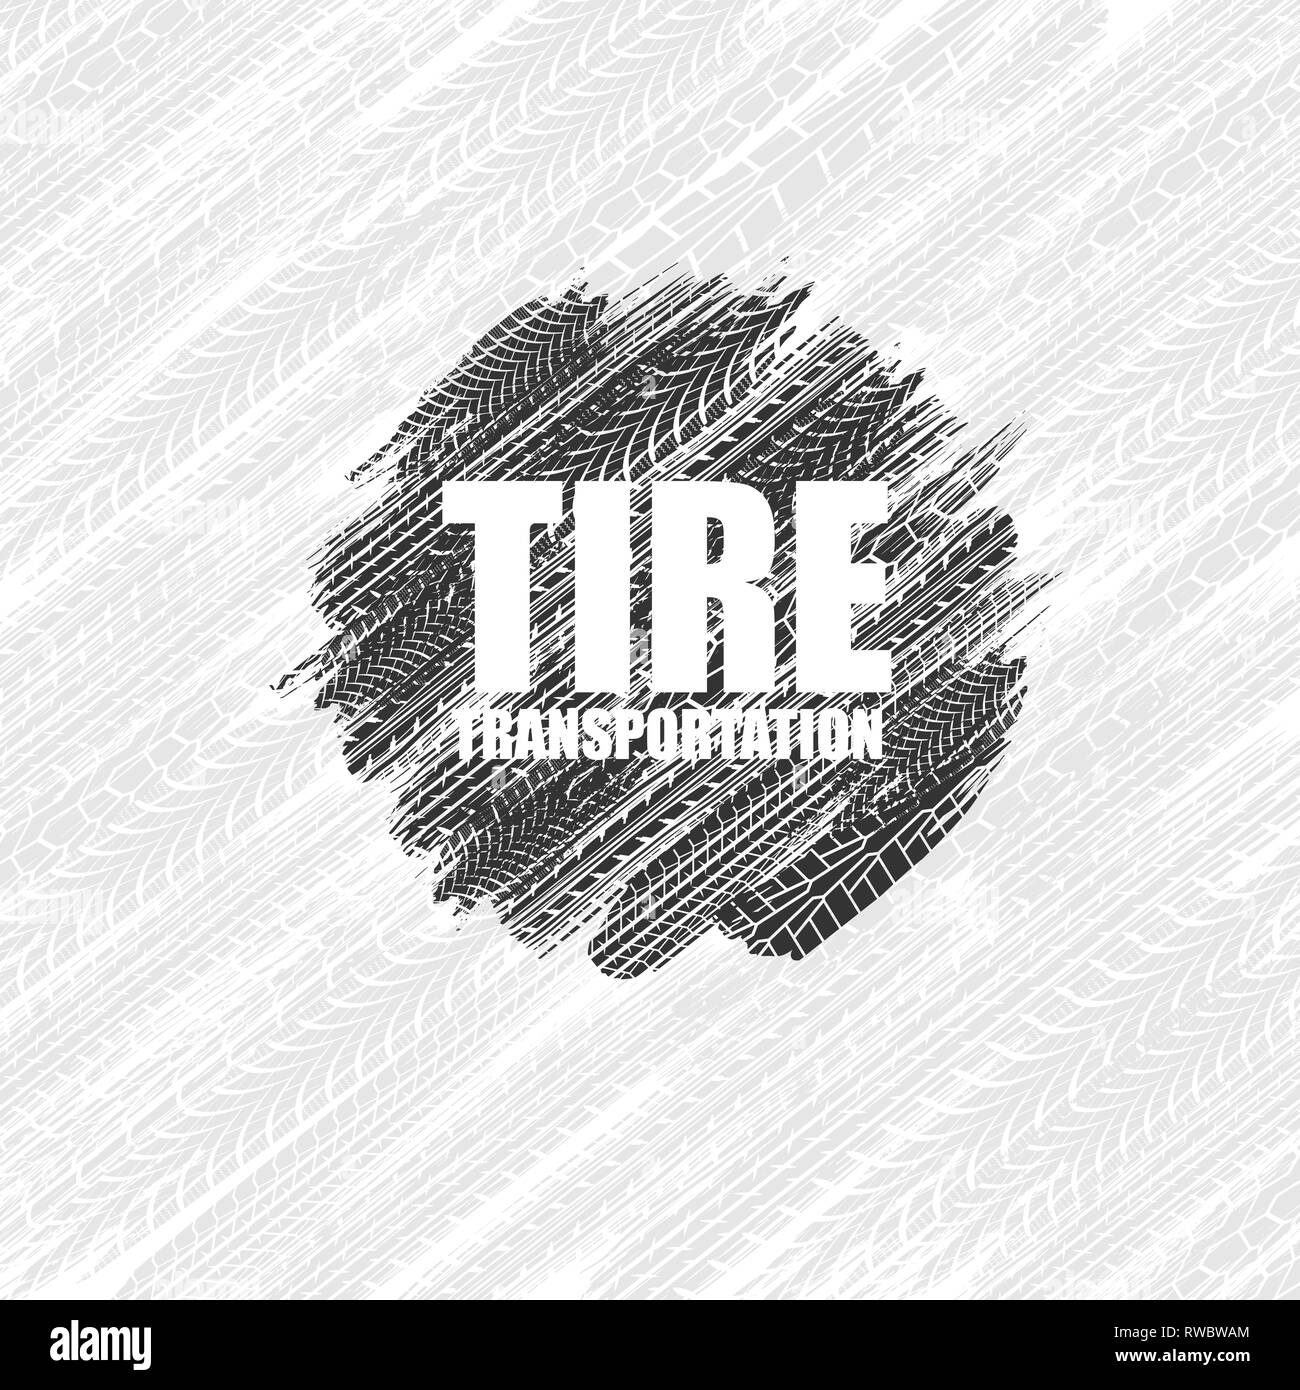 White Background With Grunge Gray Tire Tracks And Black Circle Stock Vector Image Art Alamy